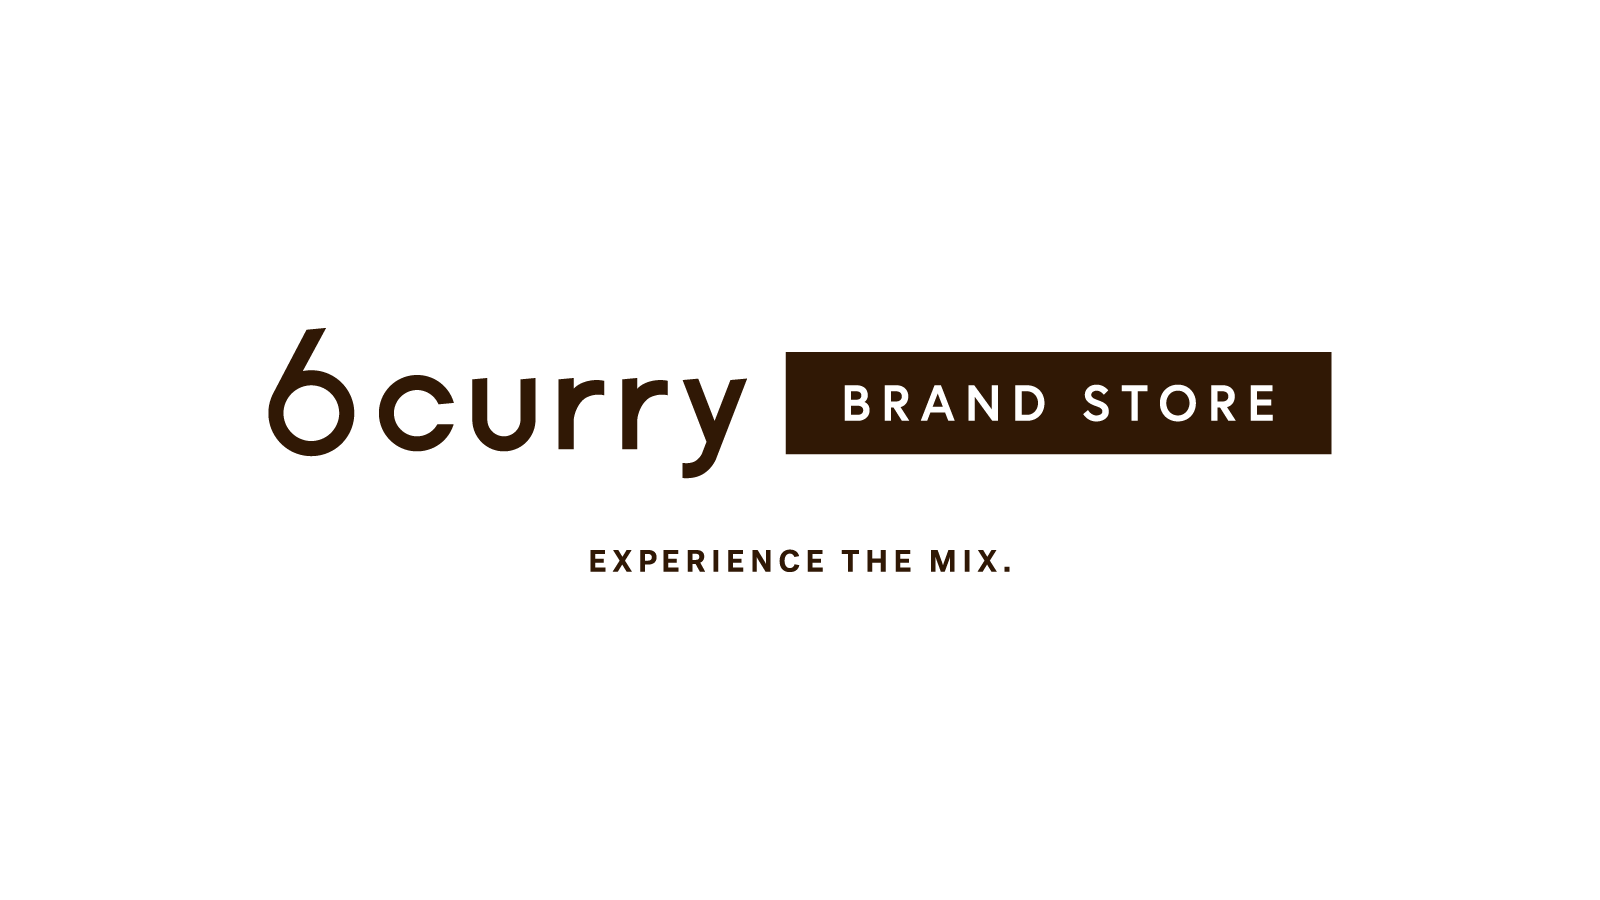 6curry BRAND STORE